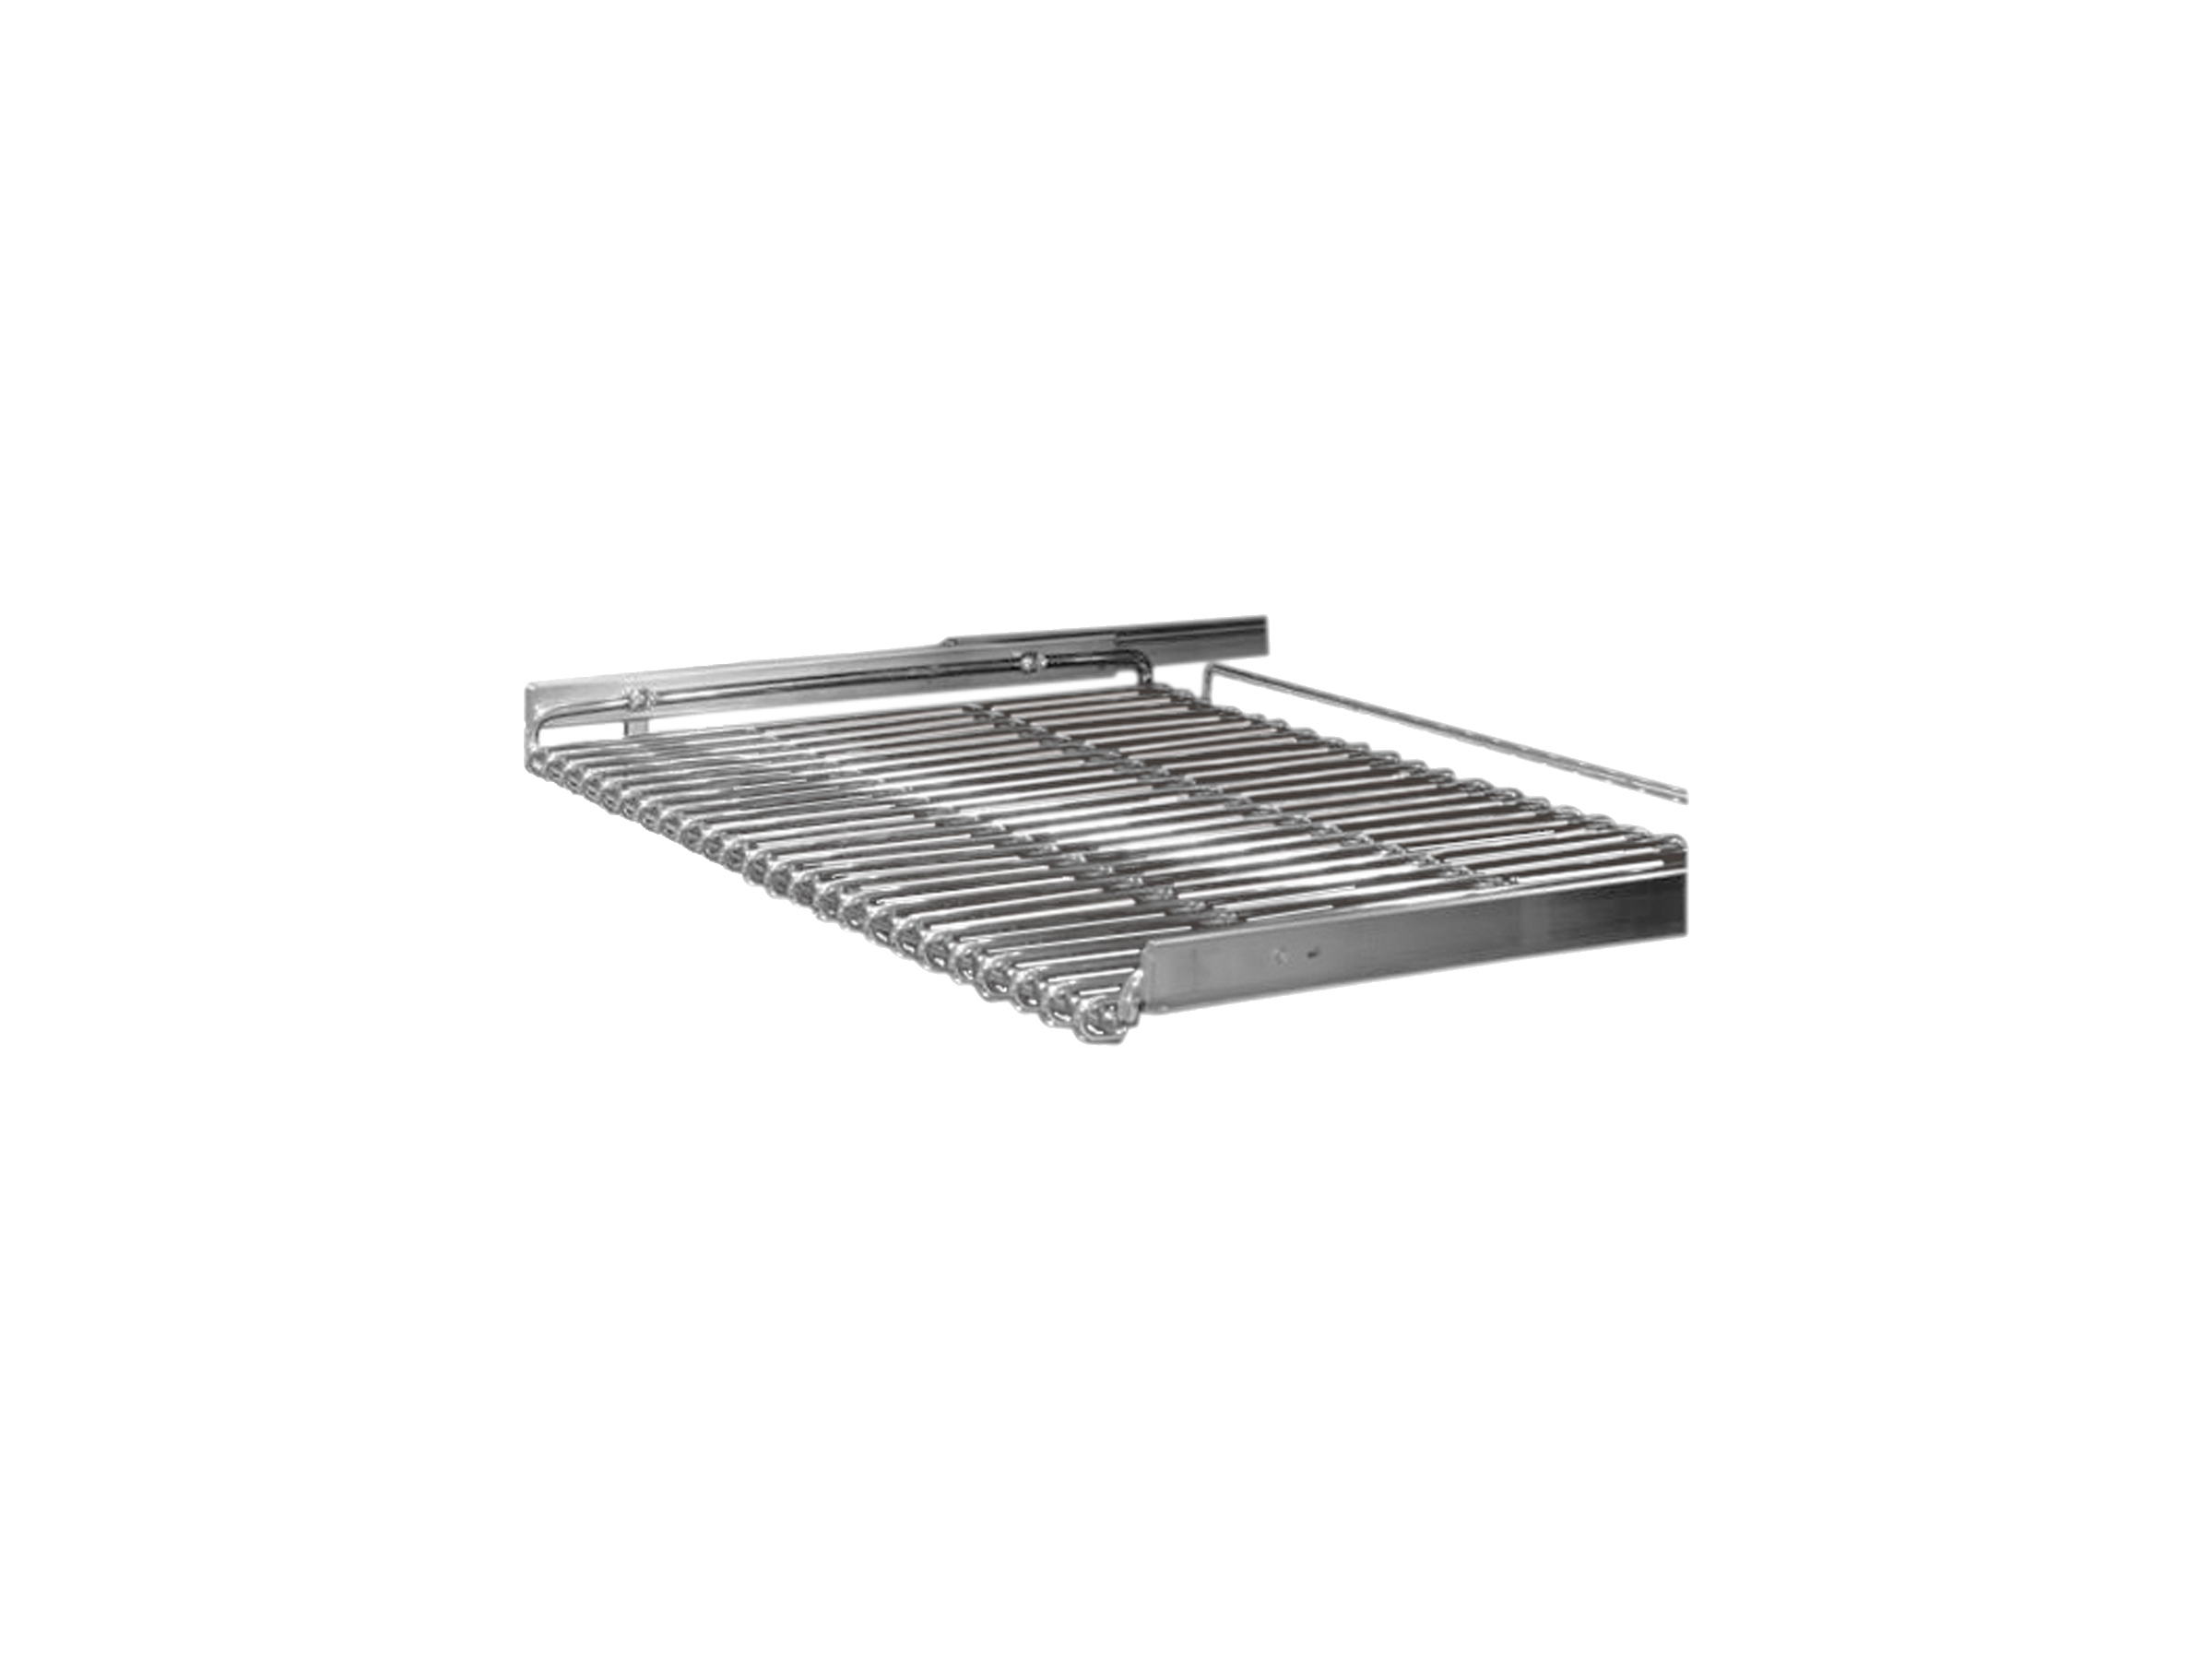 Telescopic Slide Shelf - 30 Built-in Ovens | Bertazzoni - Stainless